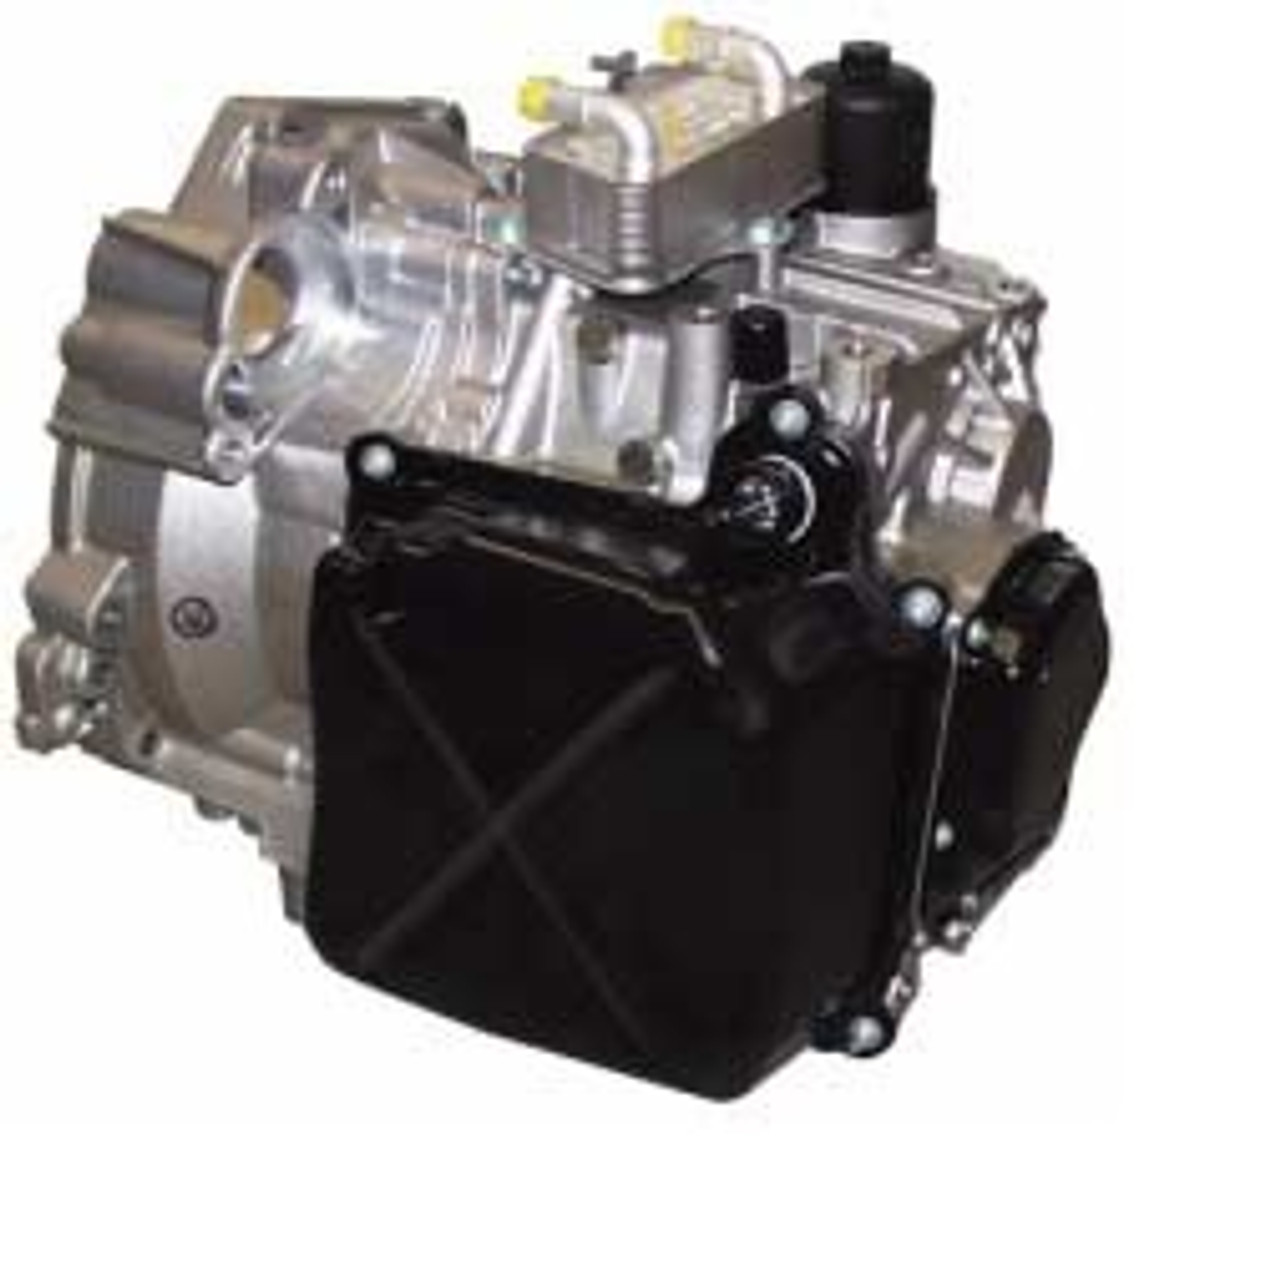 AUTOMATIC TRANSMISSION - VOLKSWAGEN AUDI - 02E DCT DQ250 DSG 6-SPEED